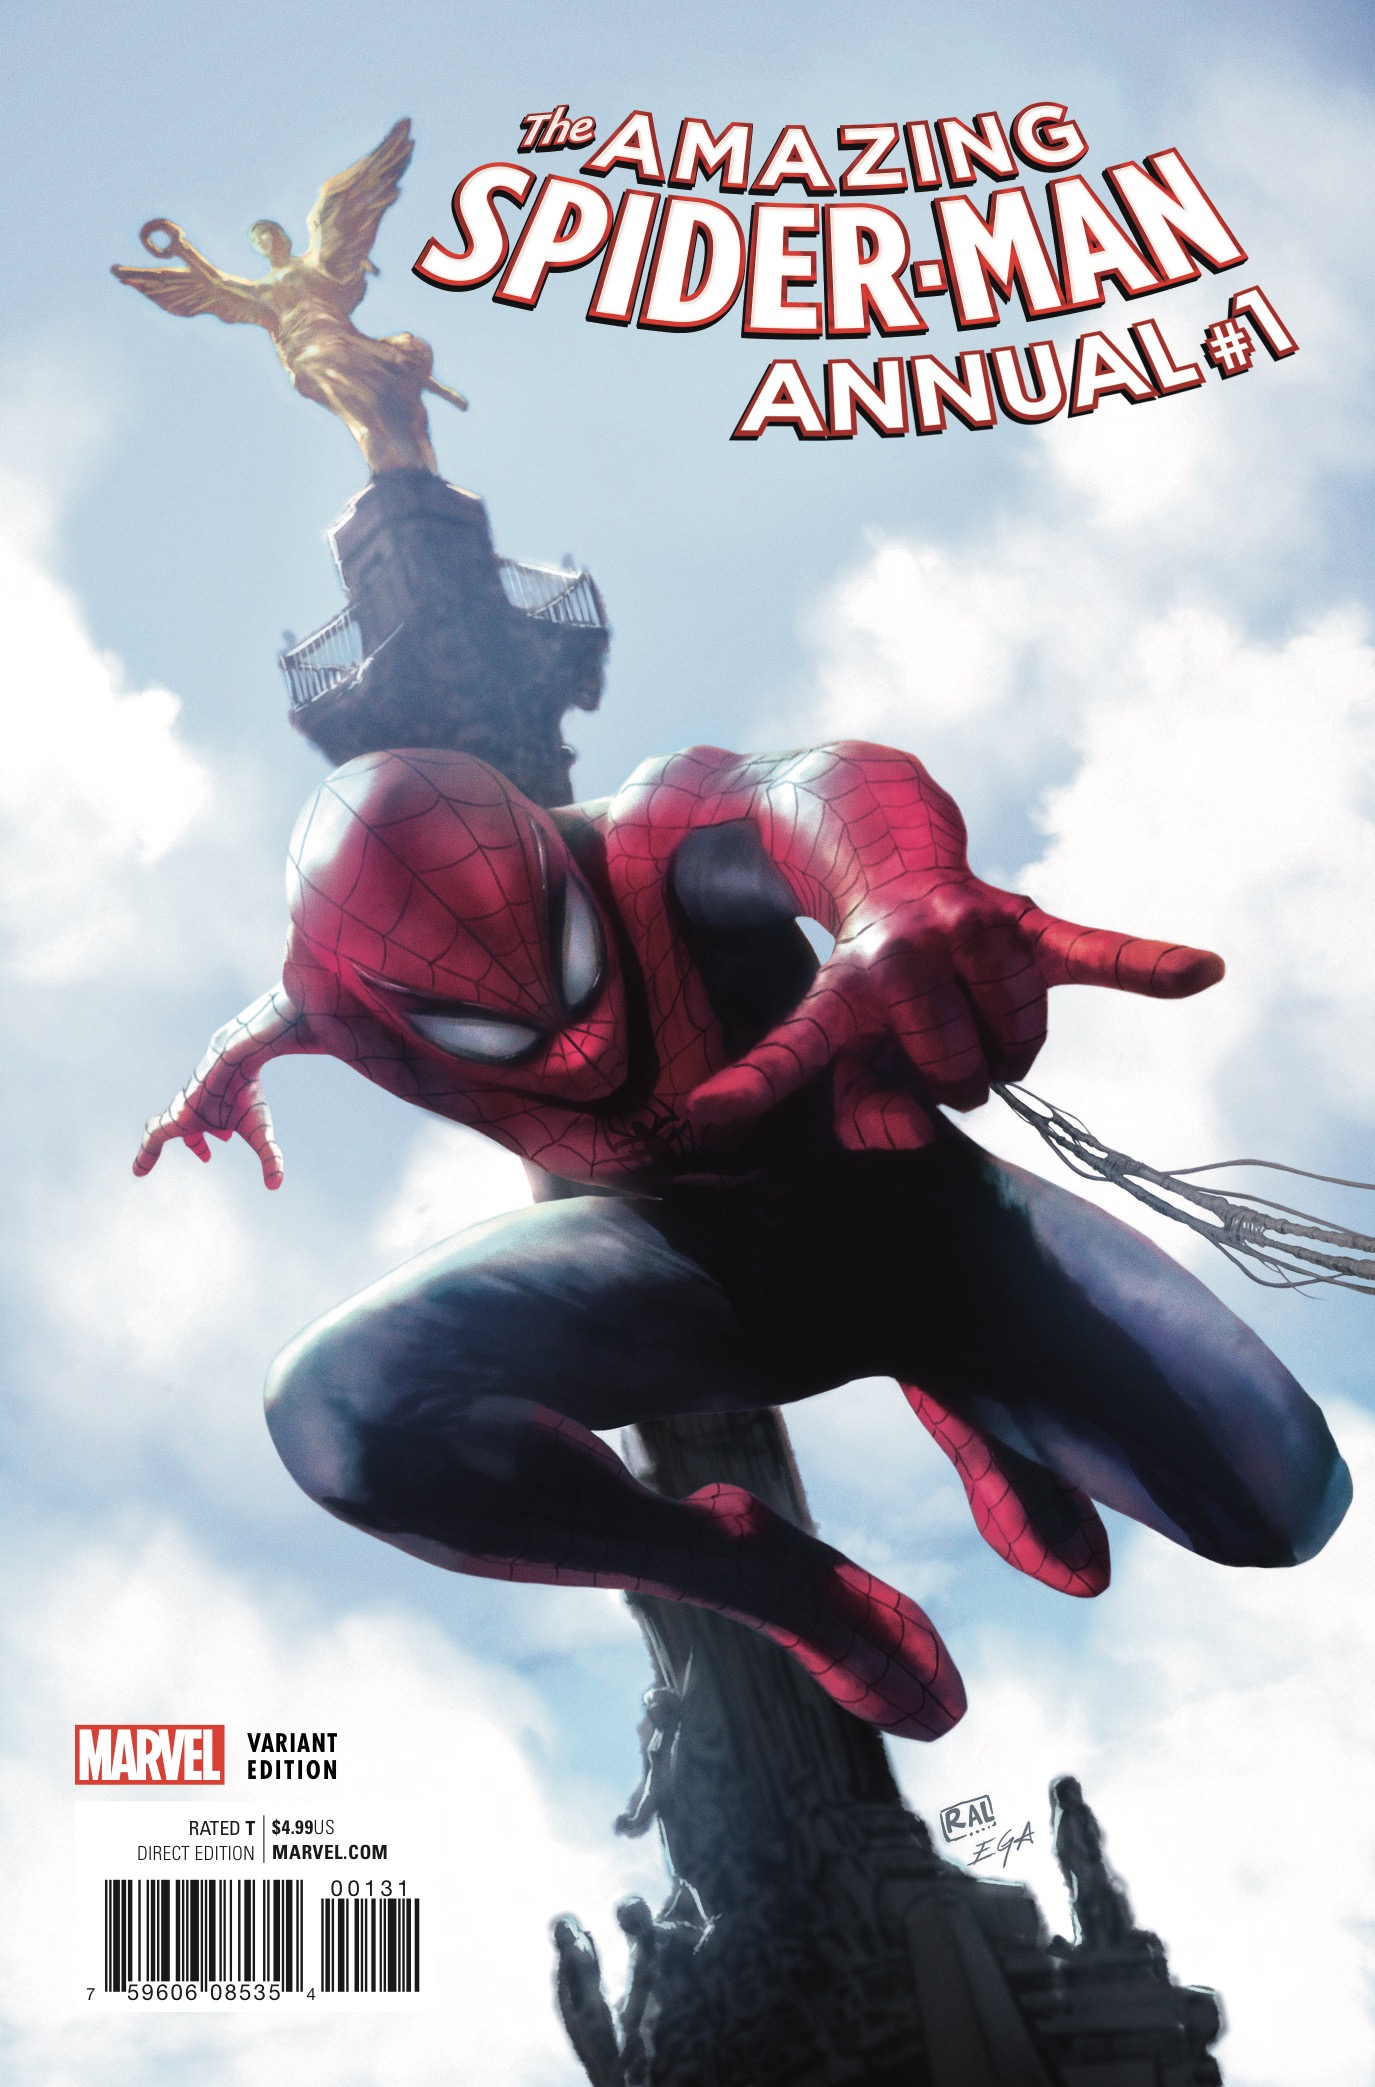 Amazing Spider-Man Annual #1 Review